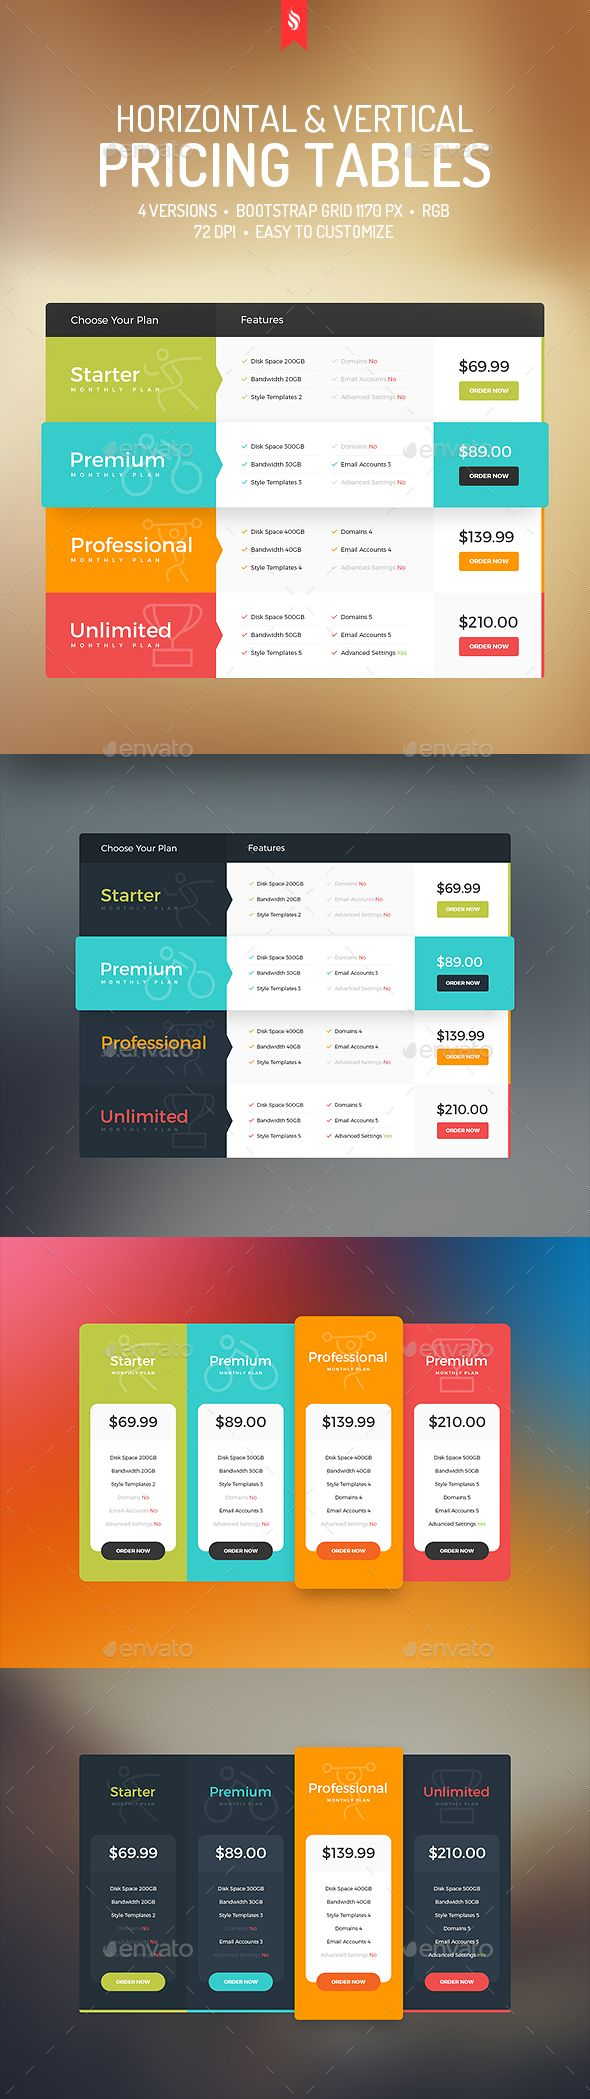 Horizontal  Vertical Pricing Tables  Pricing Table Template And